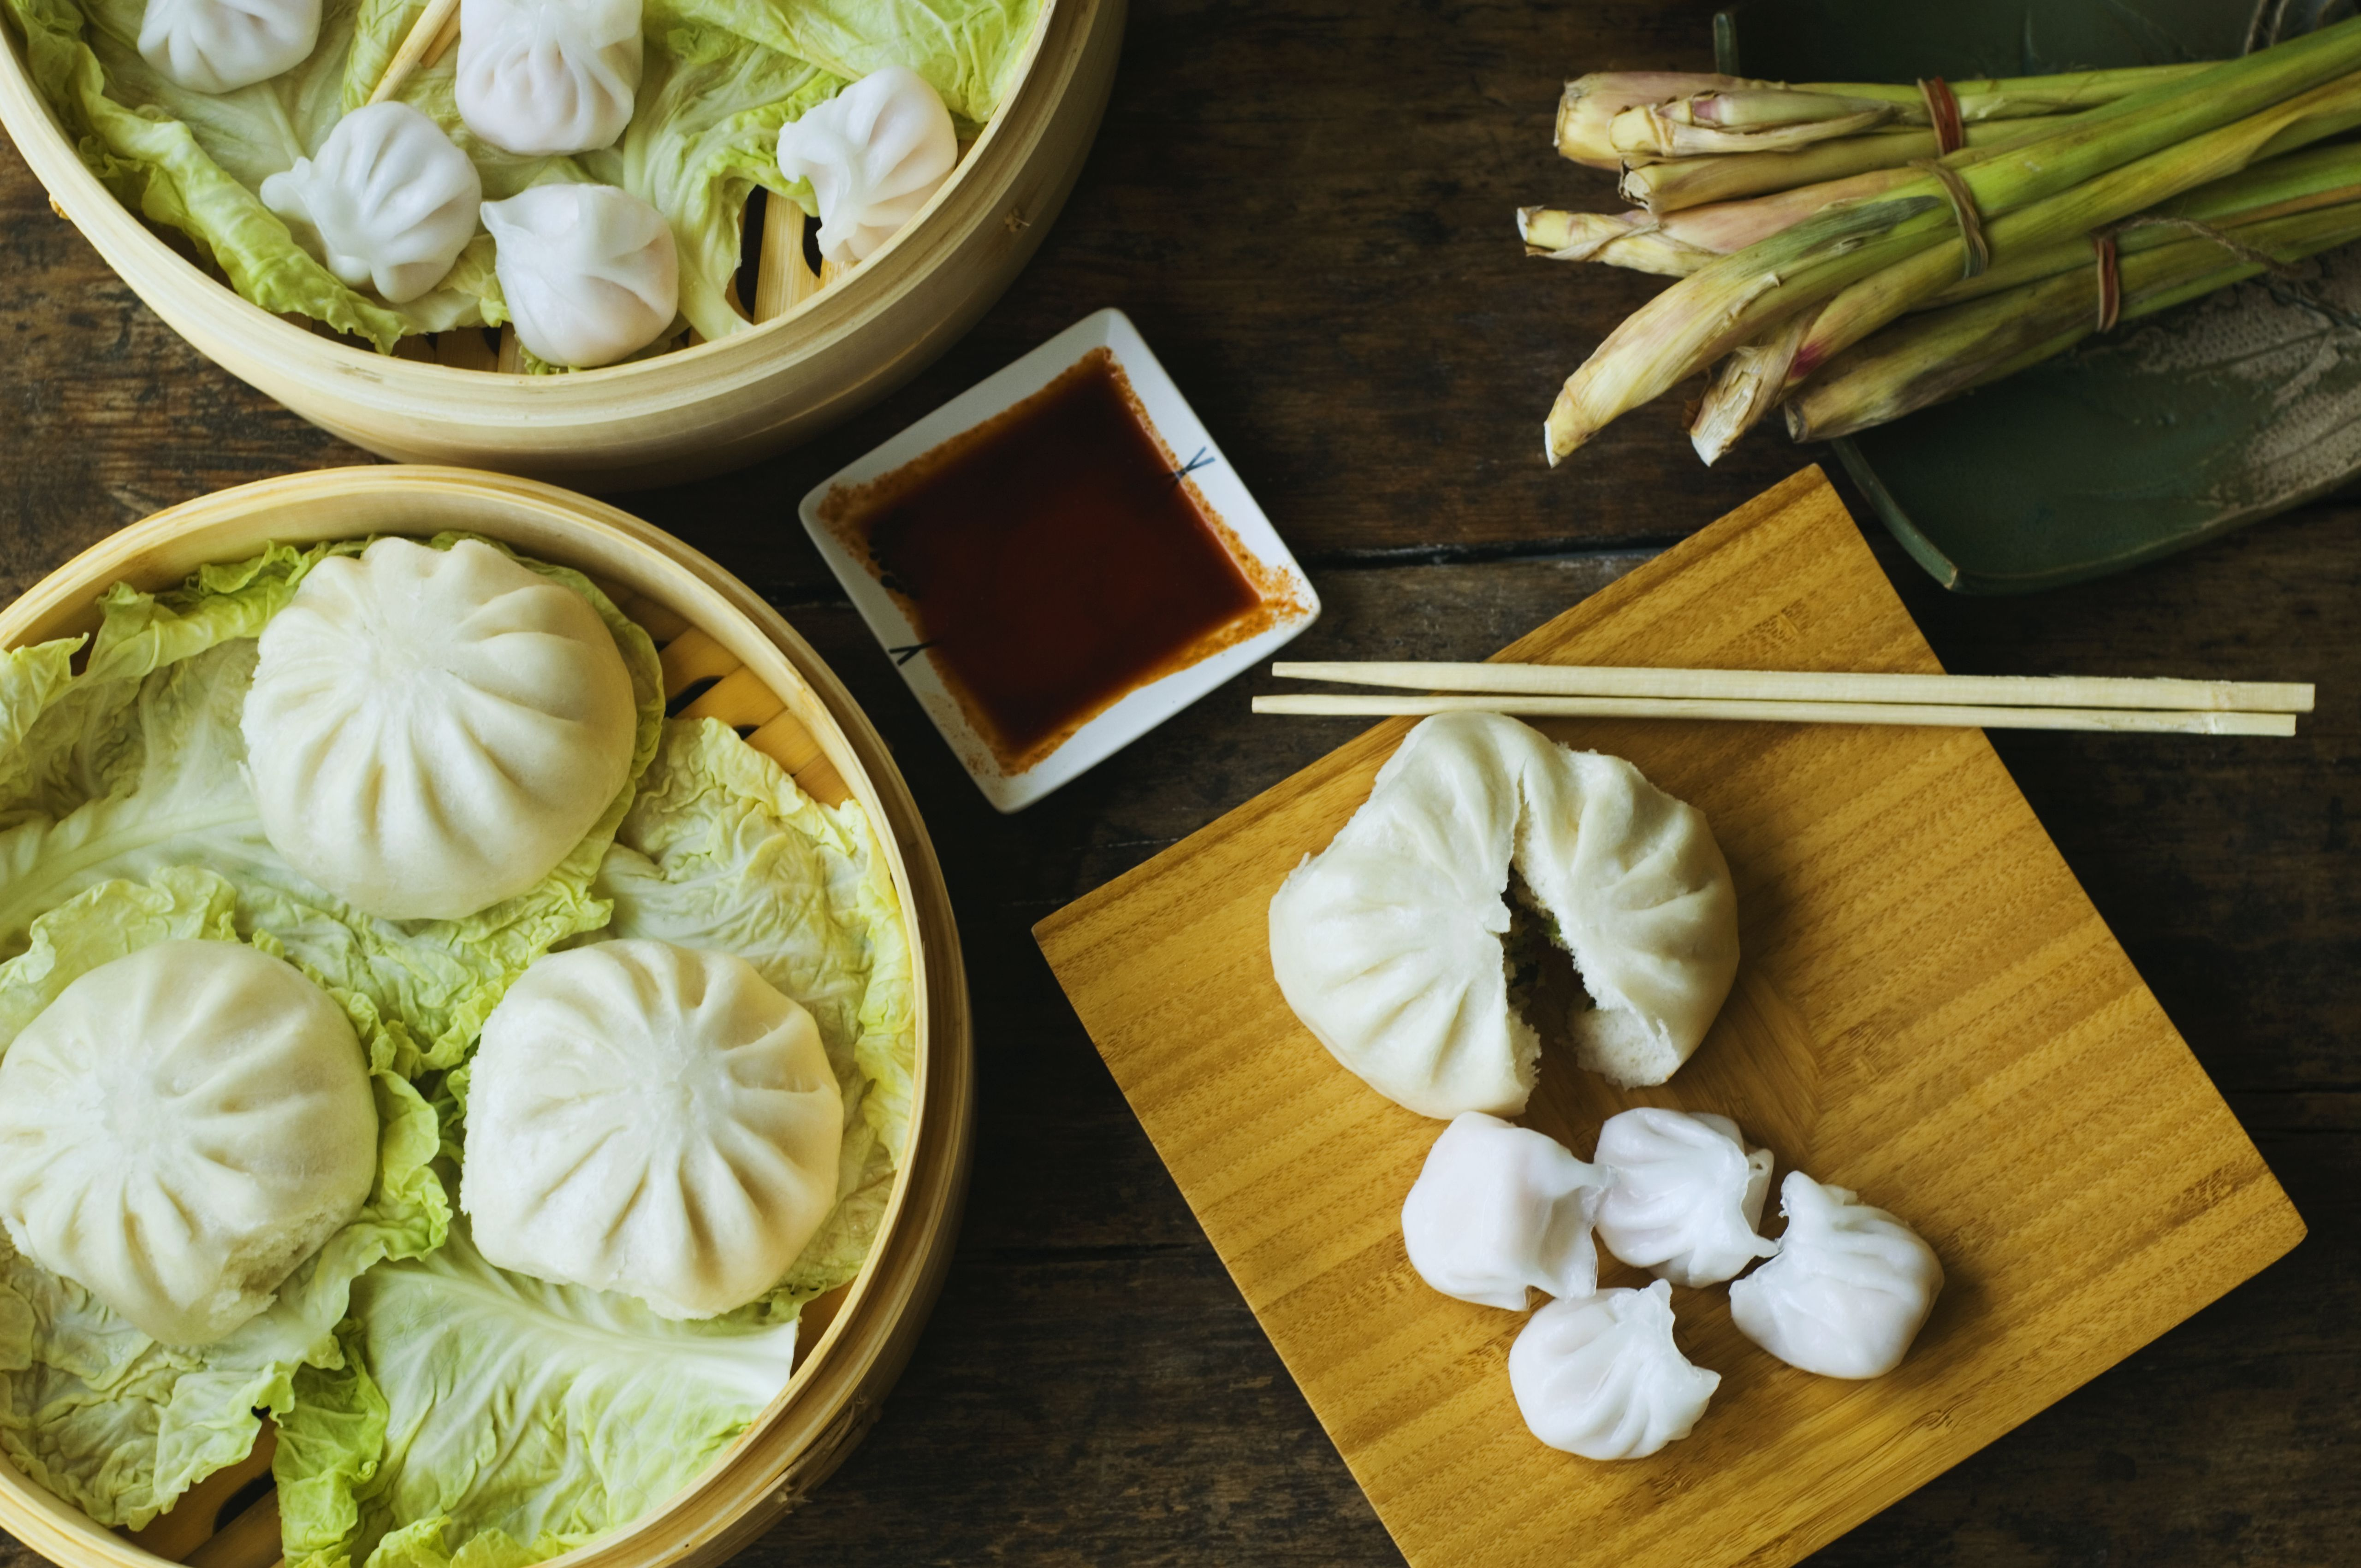 More than 40 scrumptious dim sum recipes dim sum char siu and recipes a list of authentic dim sum recipes ranging from shu mai to char siu bao forumfinder Image collections